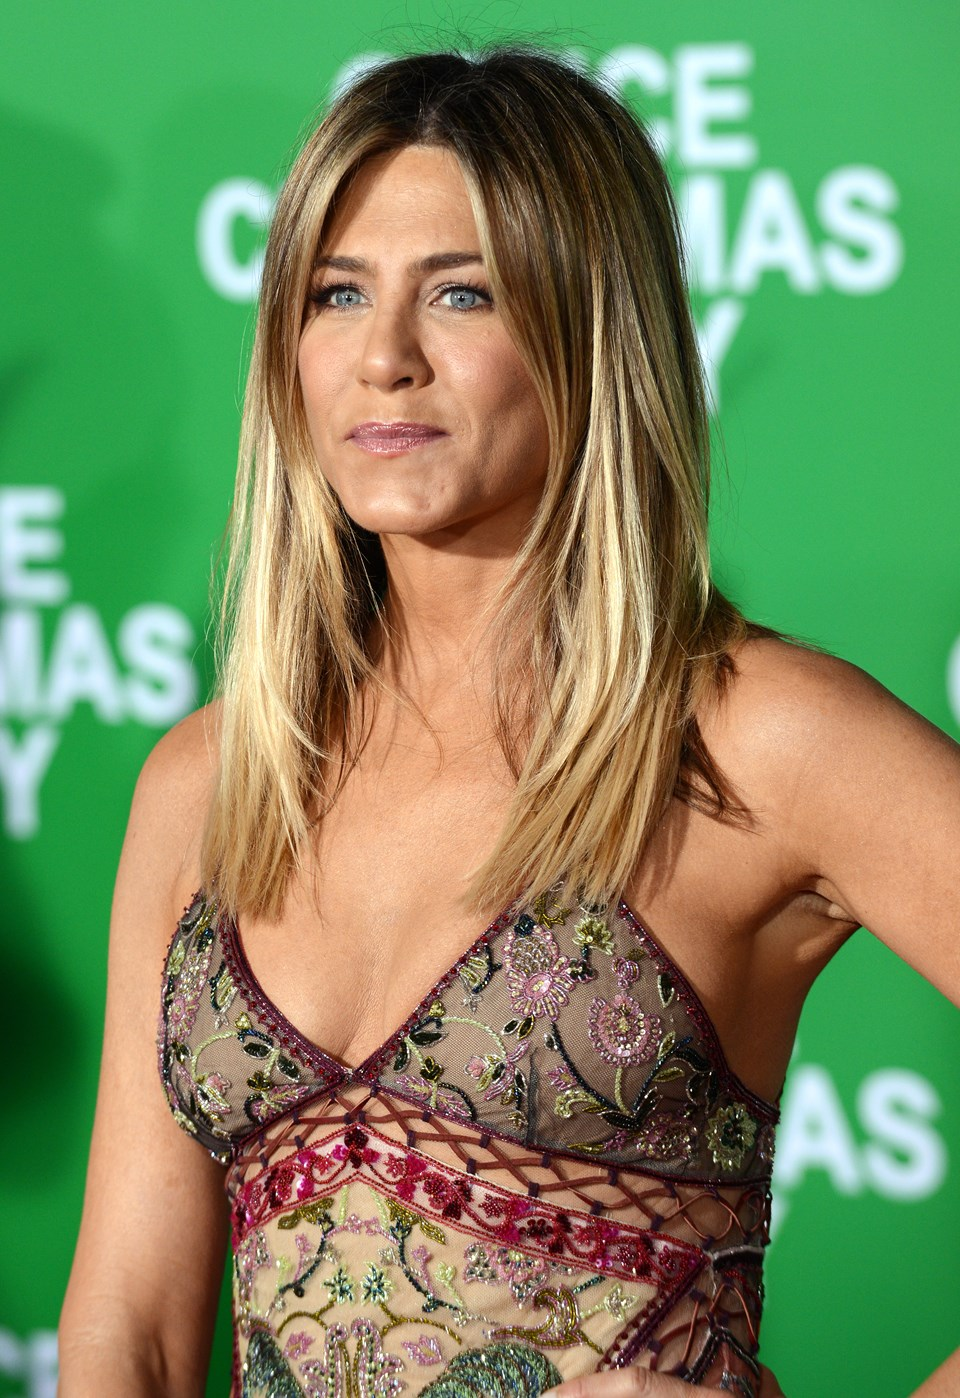 jennifer-aniston-pubes-wife-fart-videos